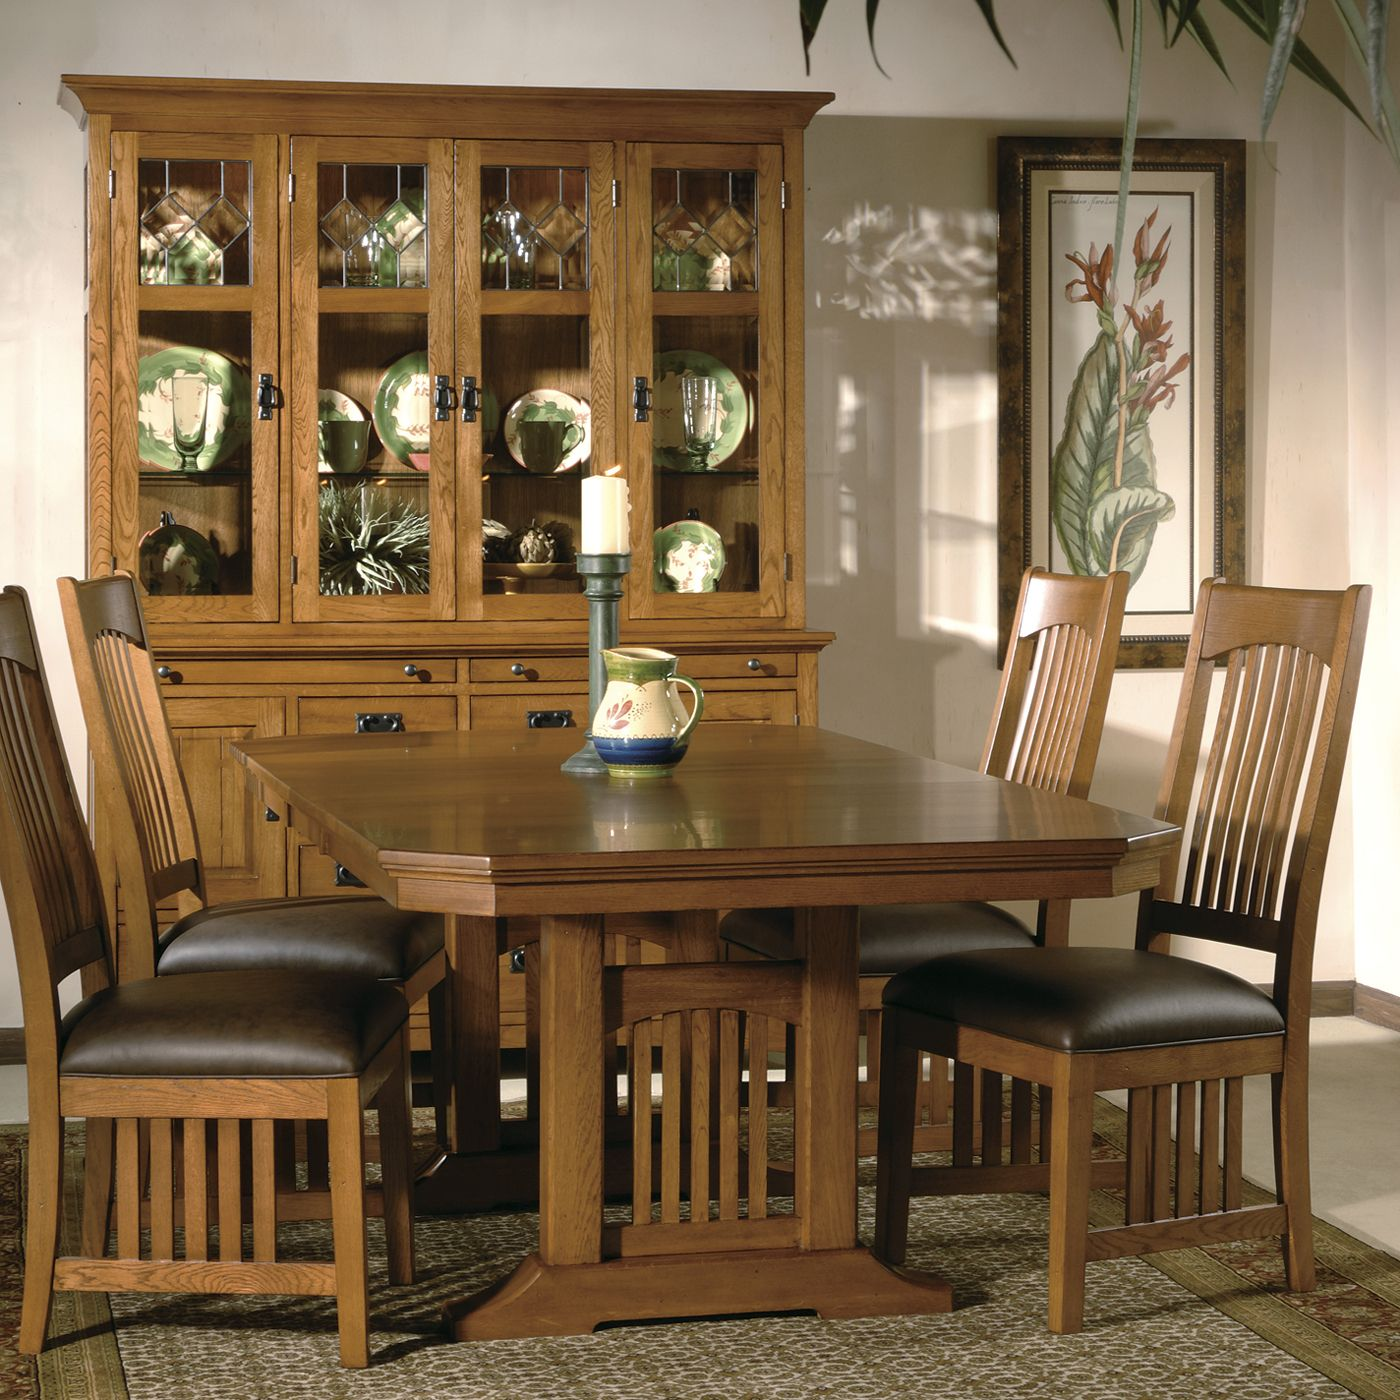 Mission Trestle Table Plans: Hekman Arts & Crafts Mission Pointe Trestle Dining Set